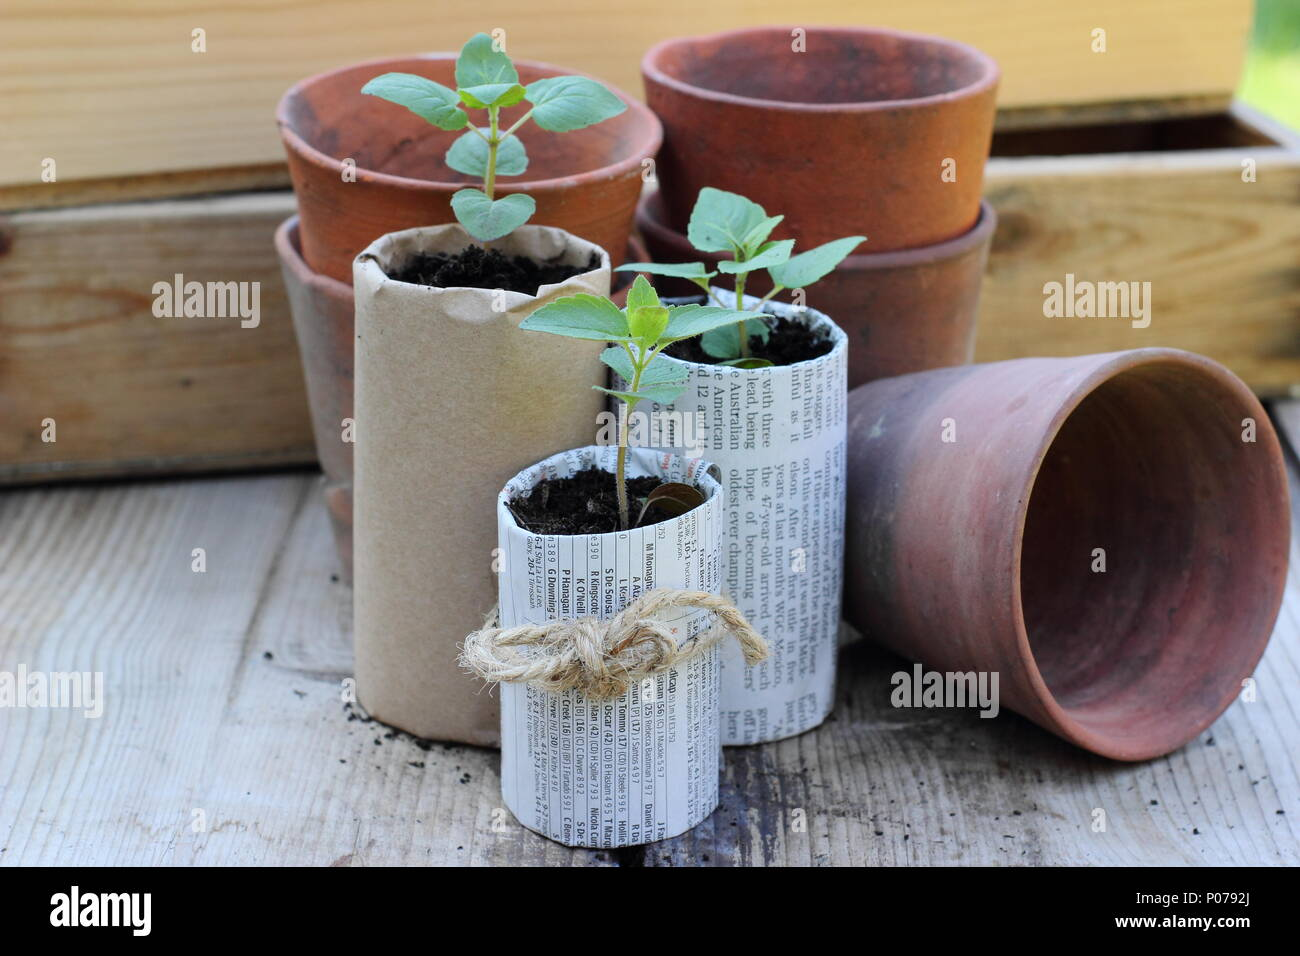 Plastic free gardening. Old clay pots, wooden seed trays and home made paper pots for seedlings used to reduce plastic use in the garden, England,UK - Stock Image